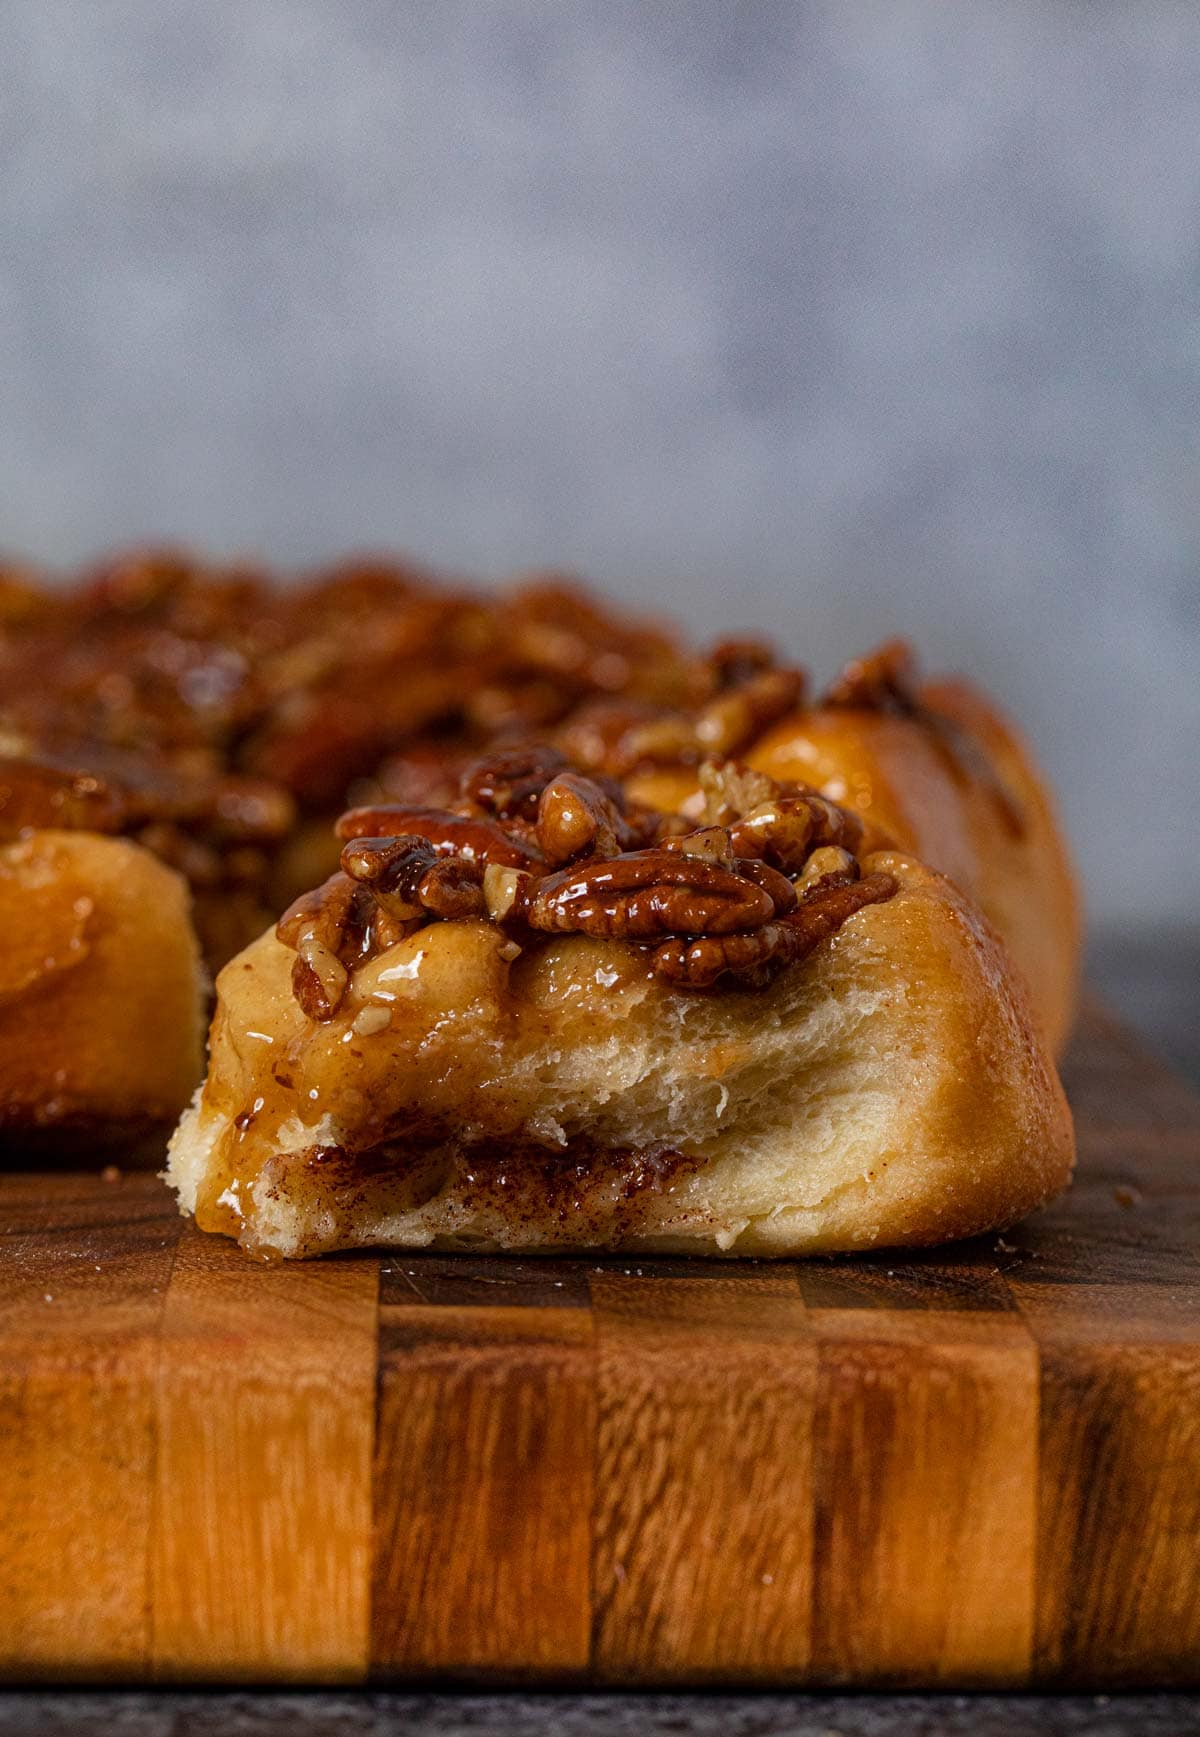 side view of Caramel Pecan Cinnamon Roll